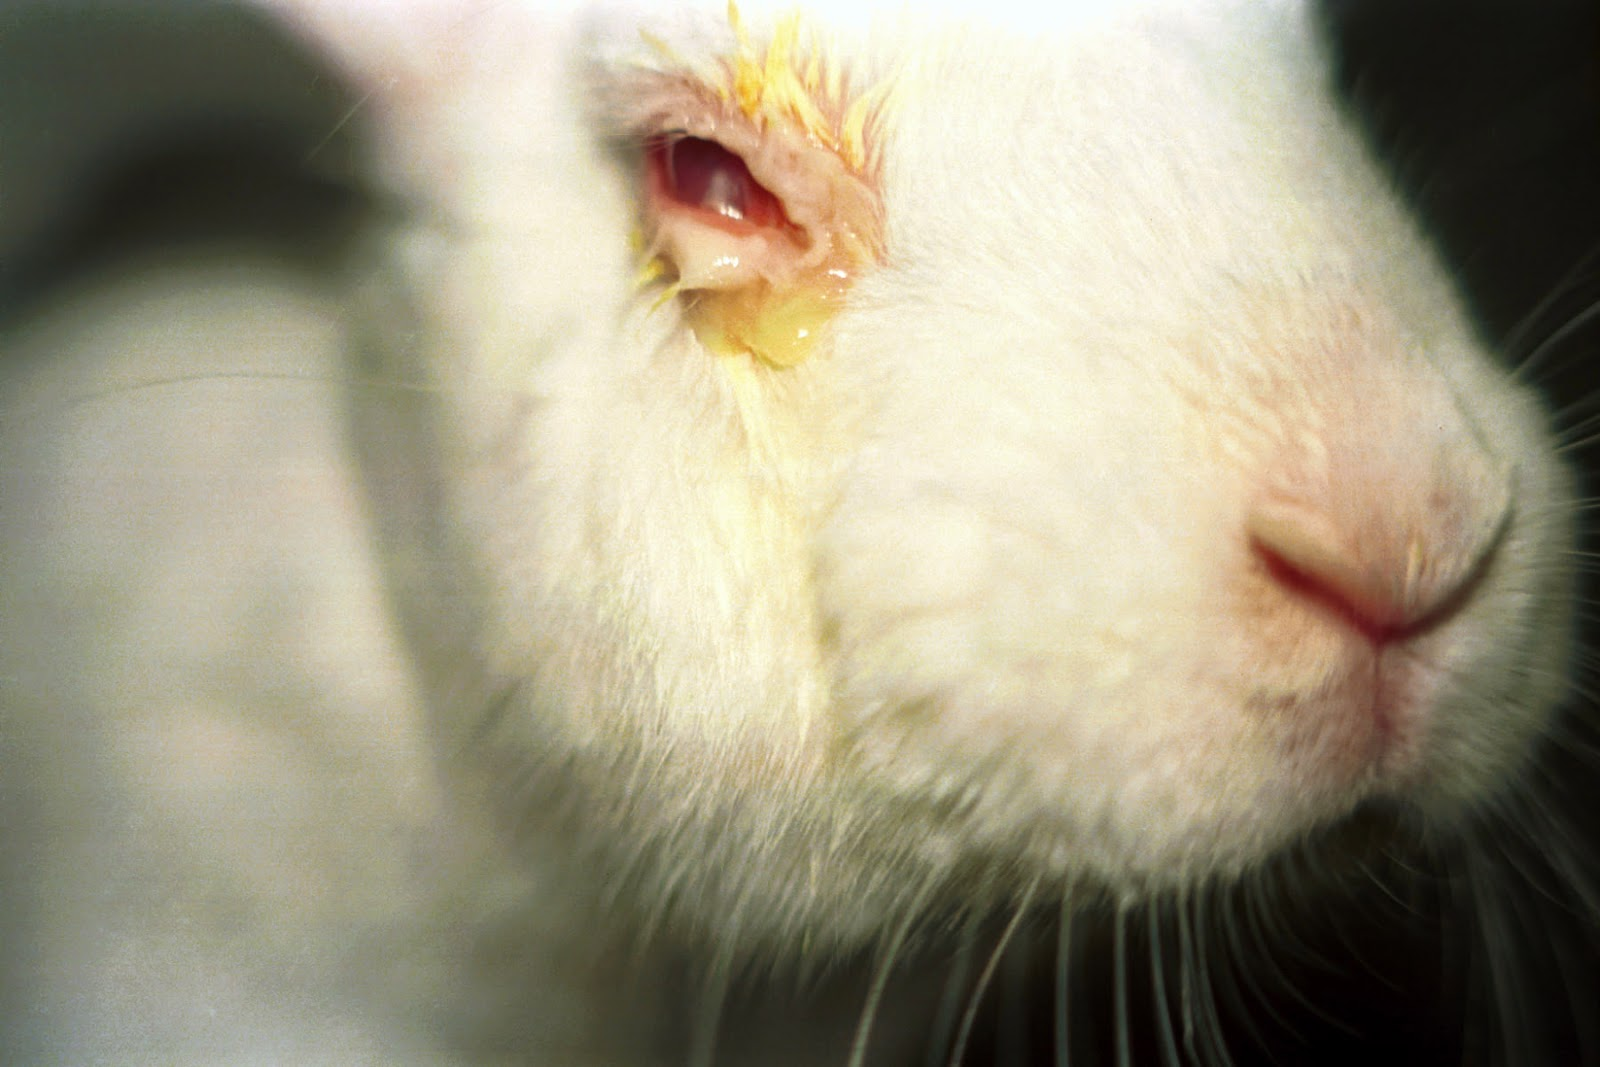 is animal experimentation justified